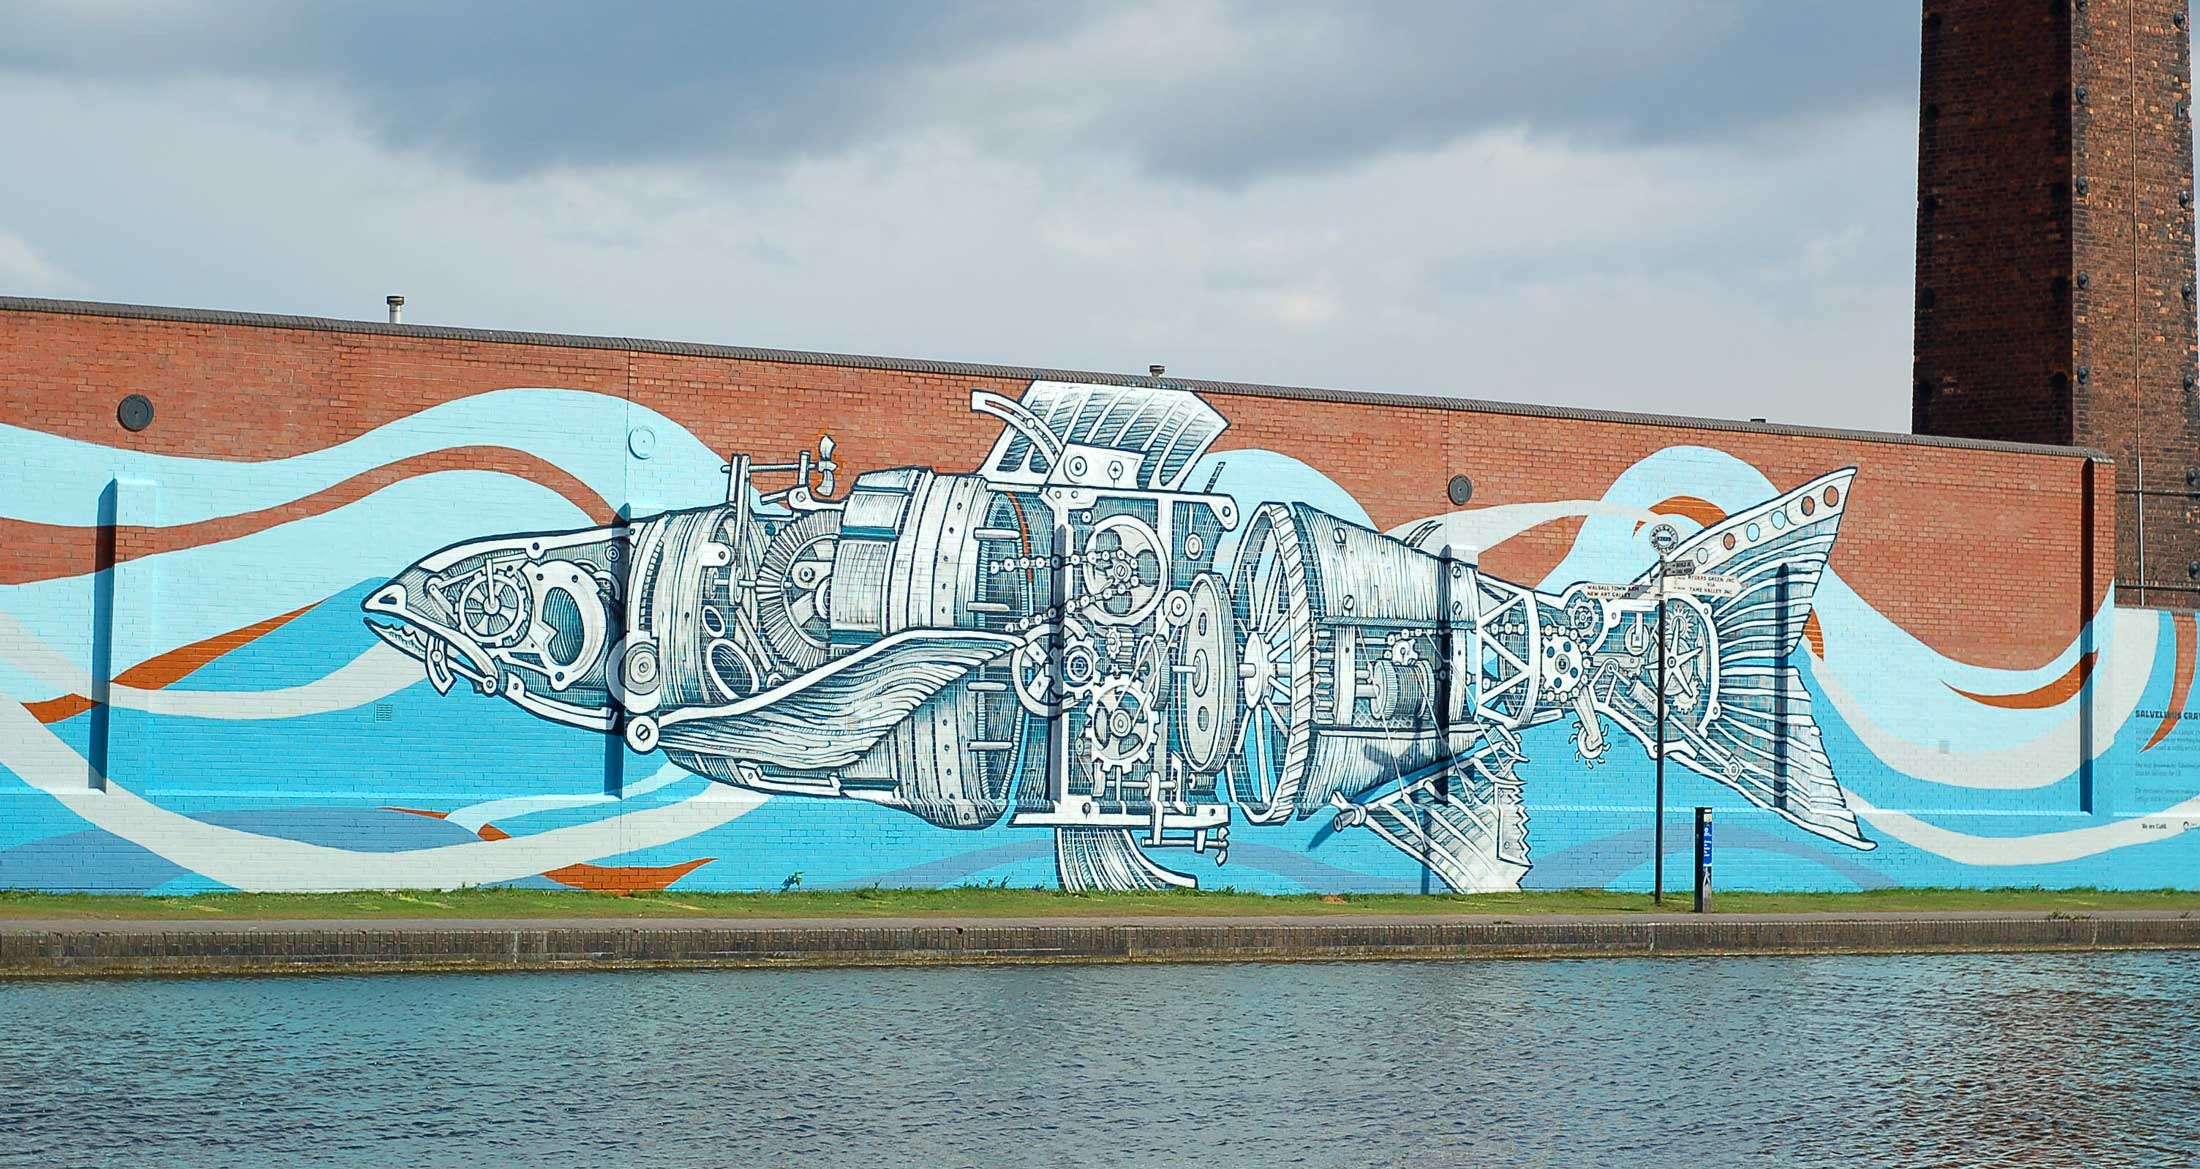 Majorfax Canalside Mural Unveiled